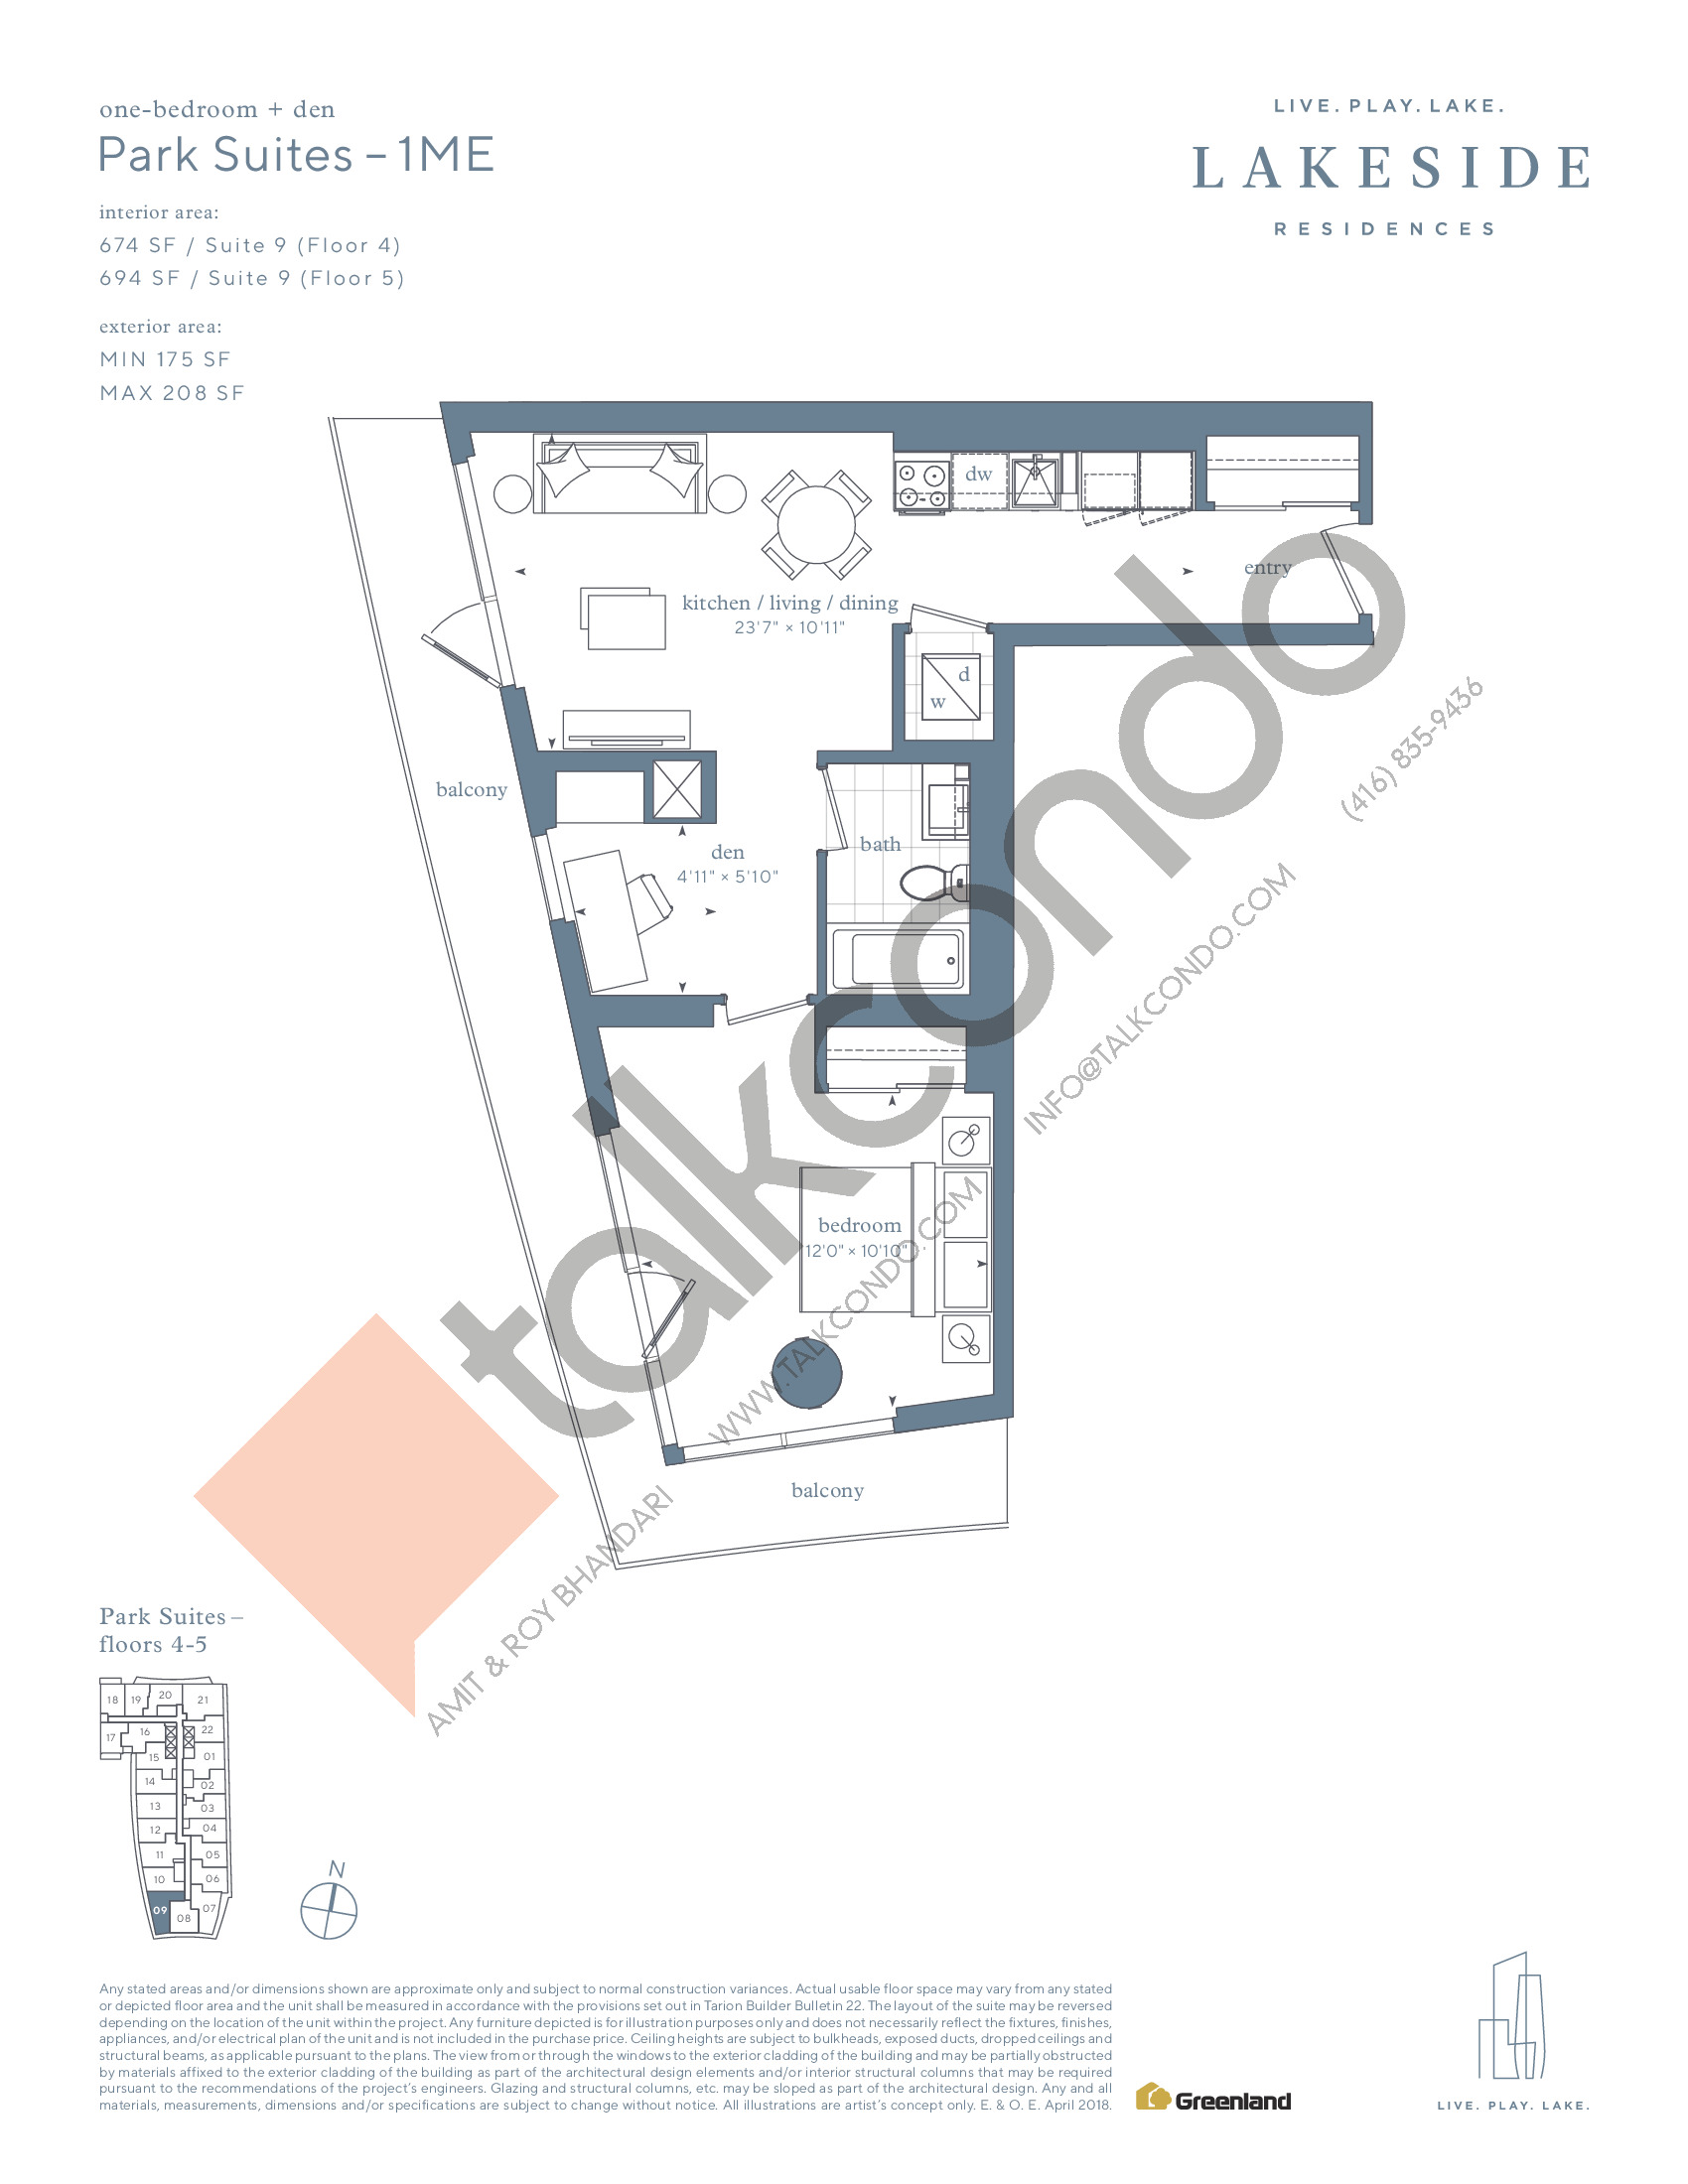 Park Suites - 1ME Floor Plan at Lakeside Residences - 694 sq.ft